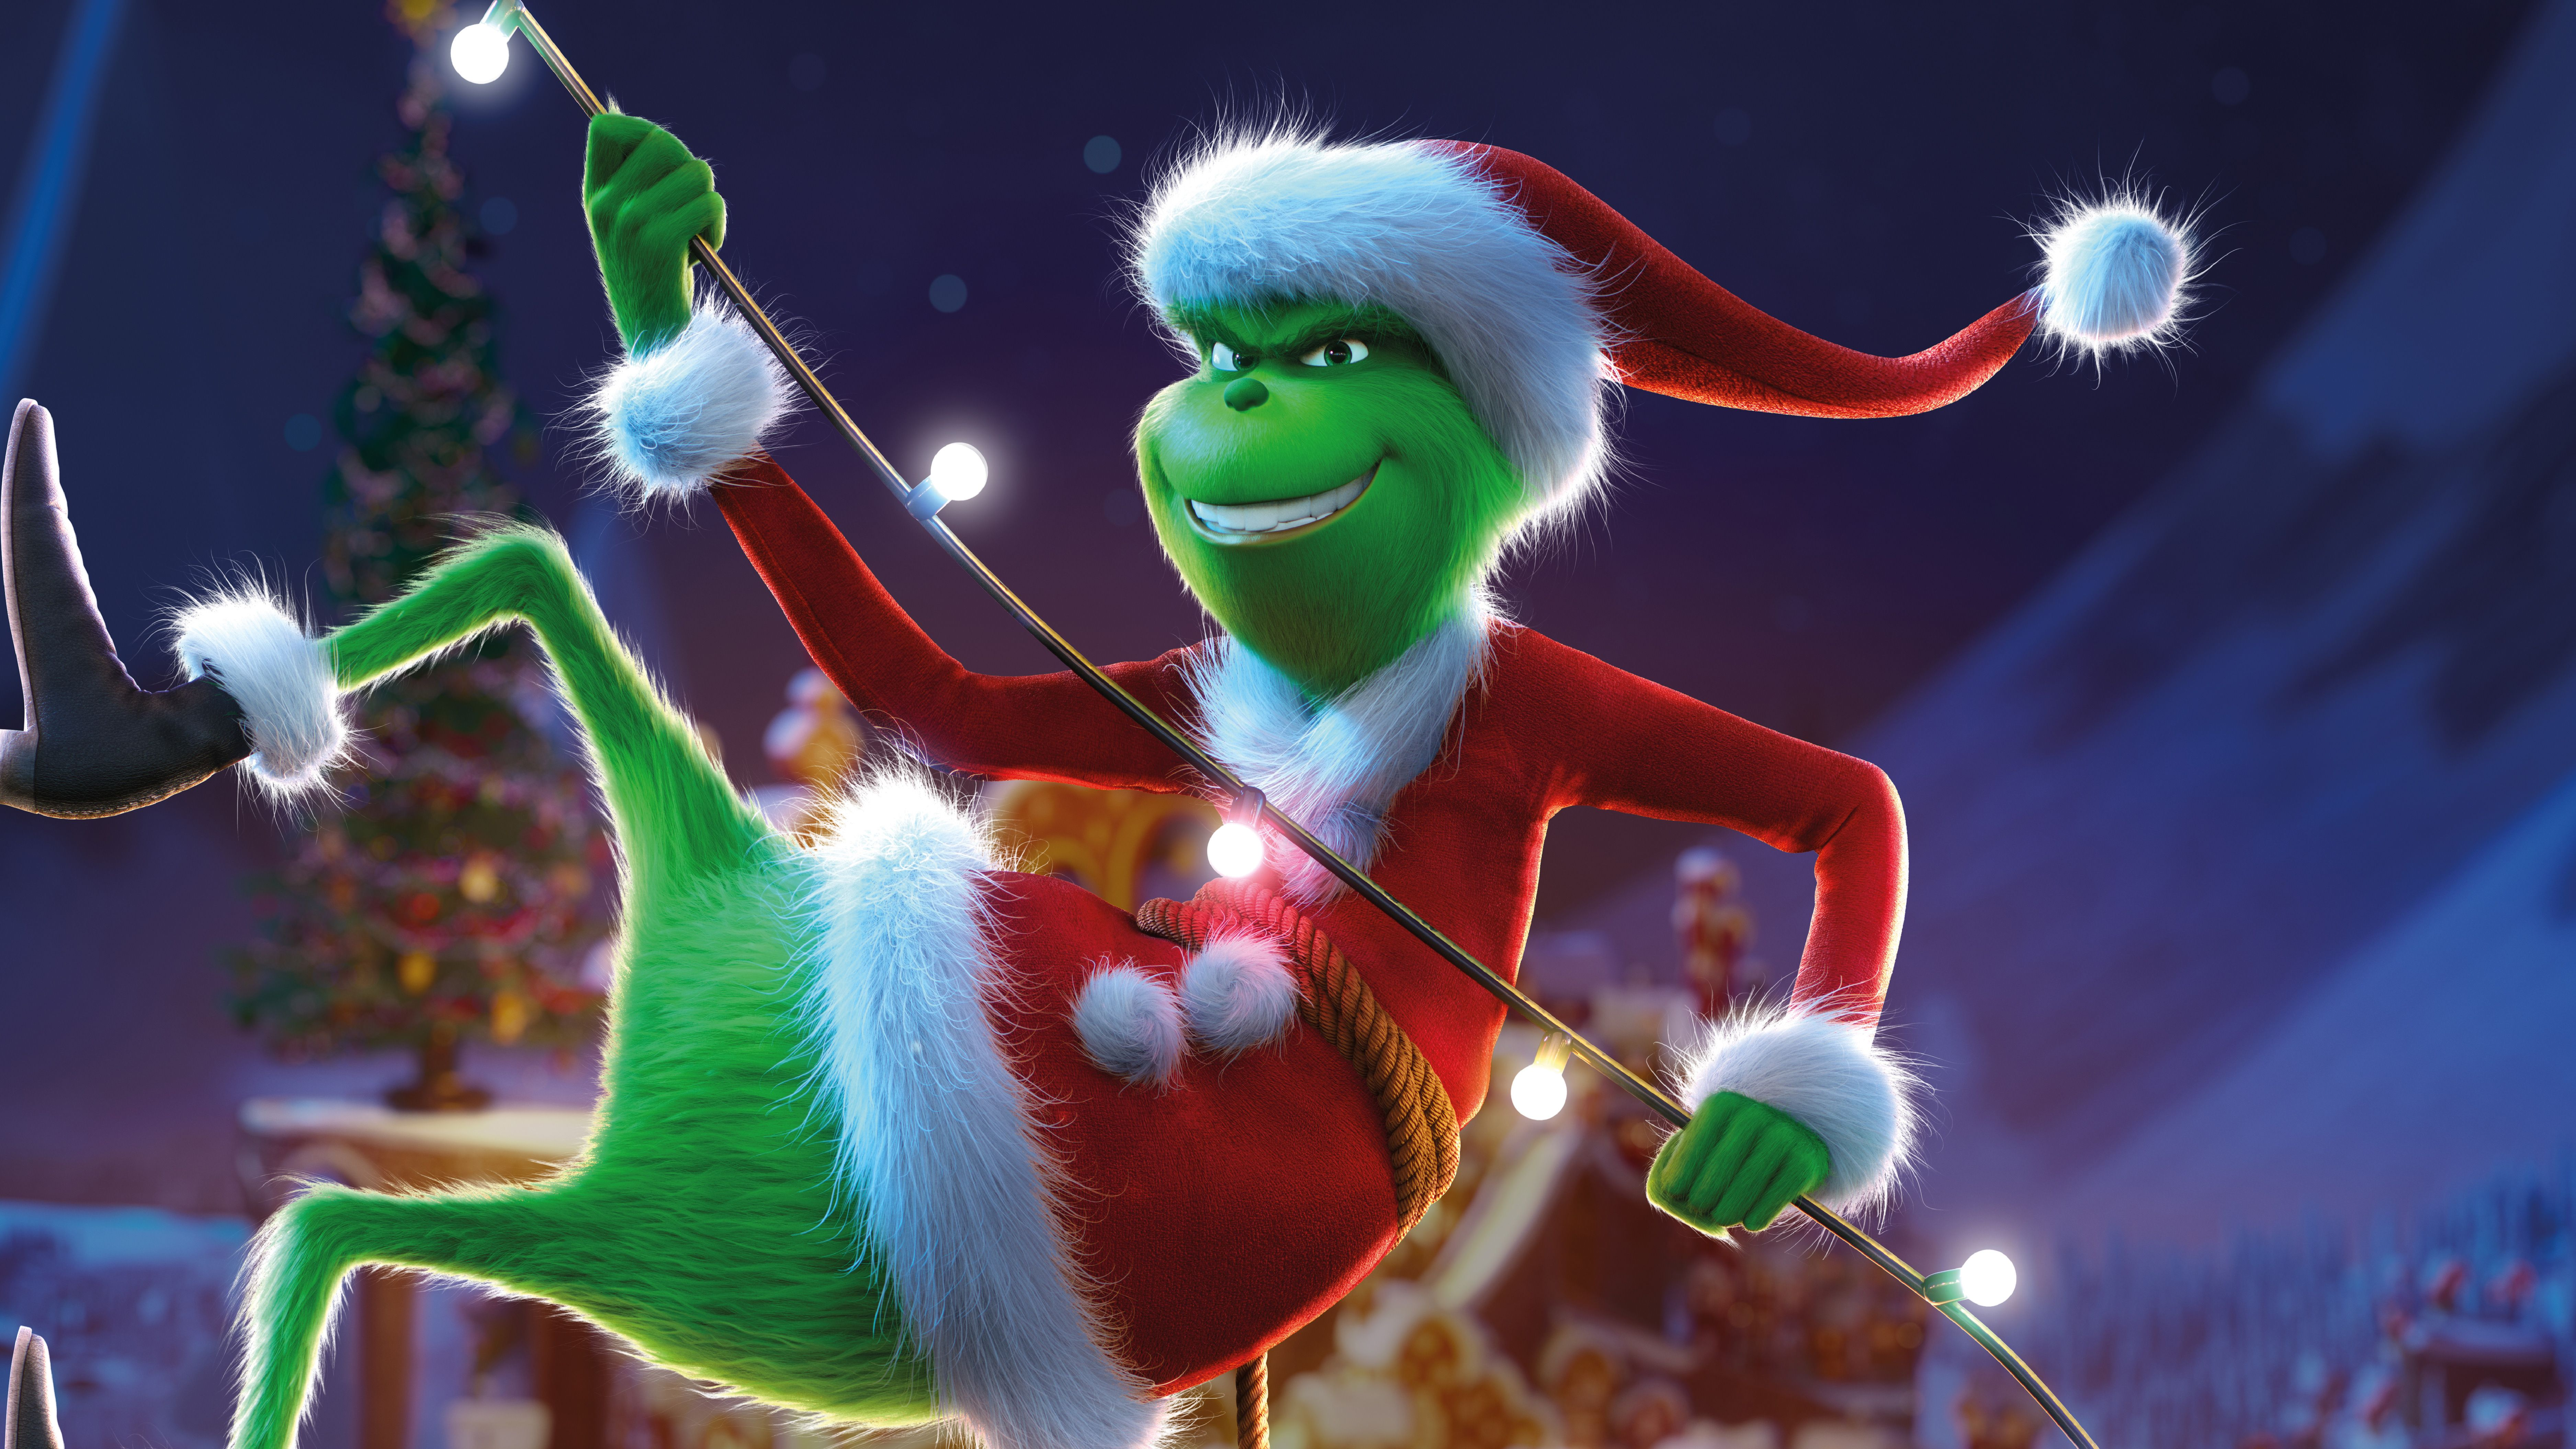 7500x4218 The Grinch 8k, HD Movies, 4k Wallpapers, Images, Backgrounds, Photos ...